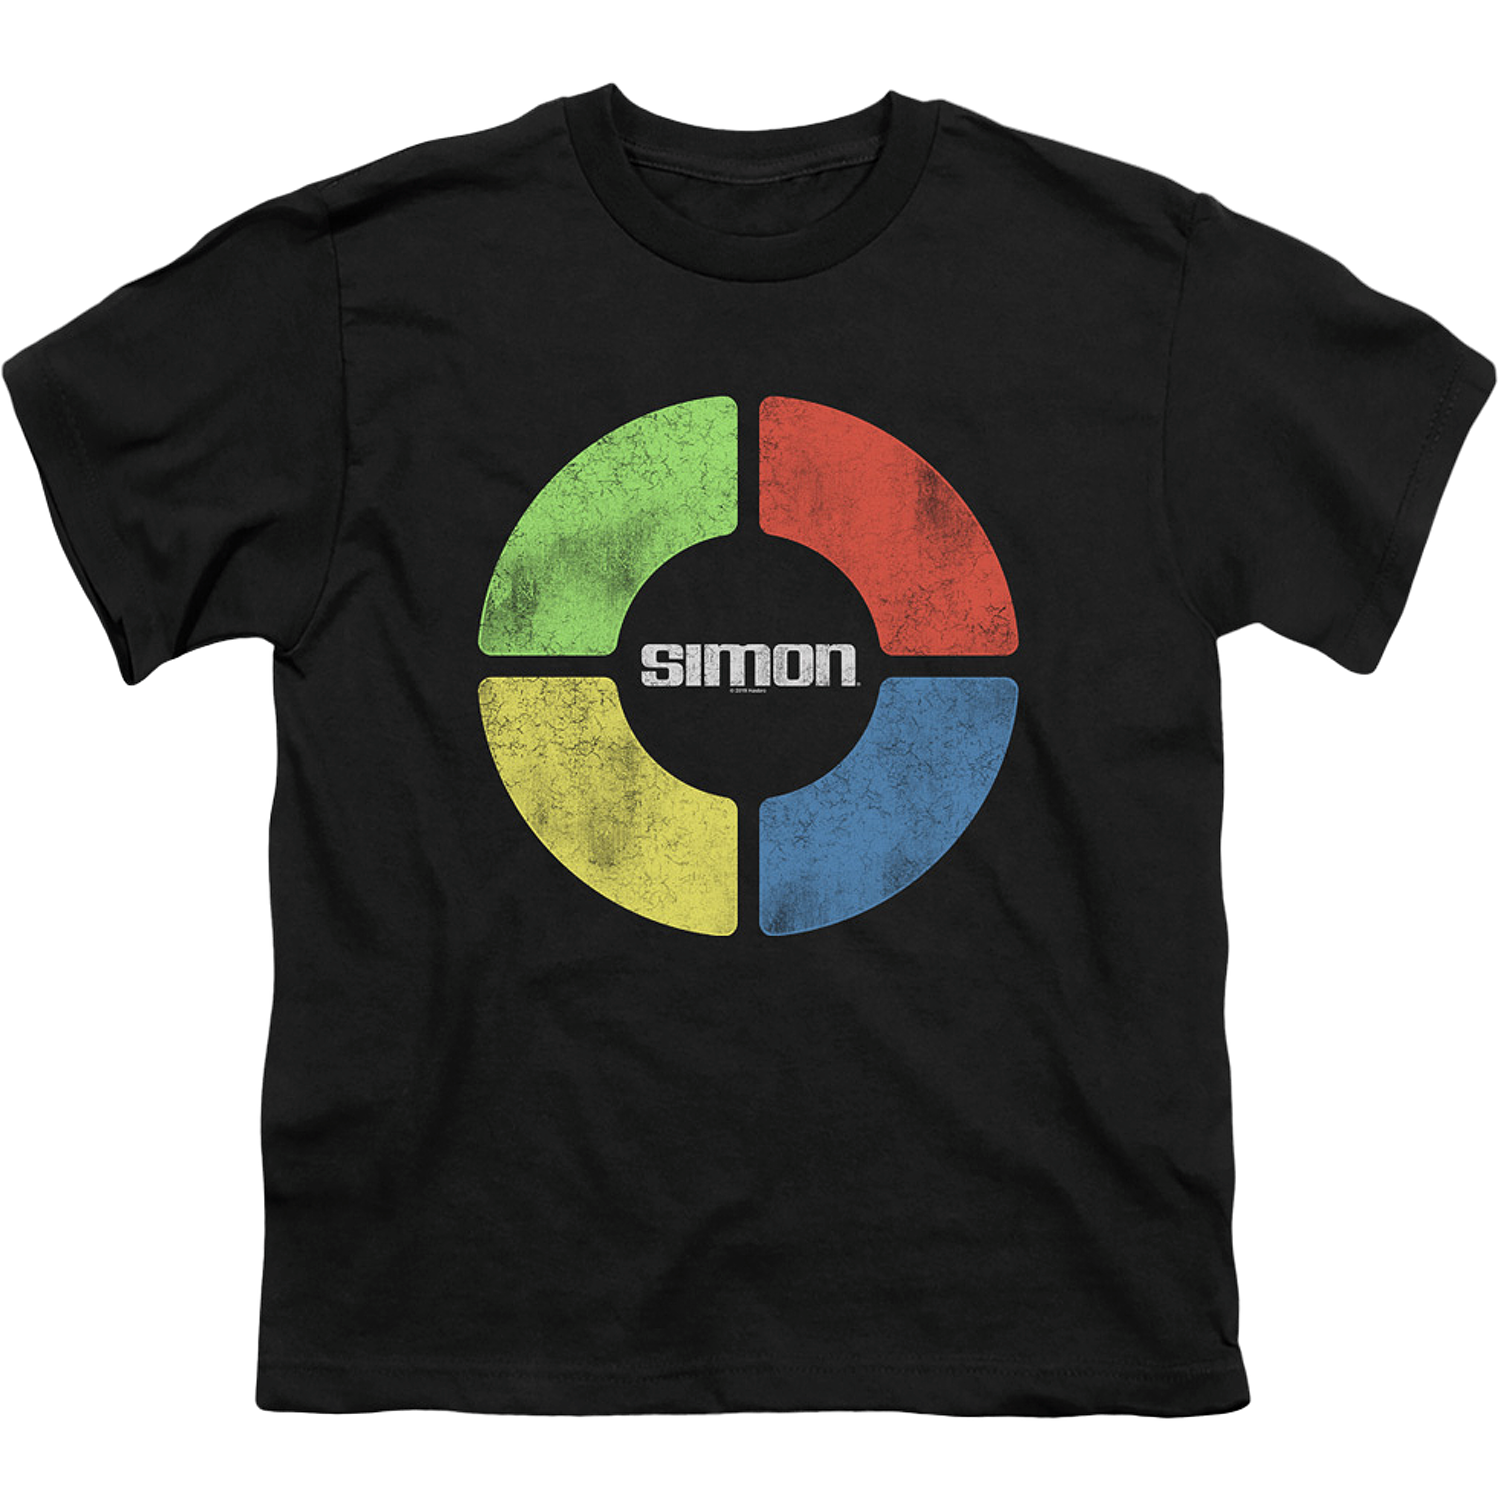 youth simon shirt Unisex T-Shirt All Color Size Up To 5XL